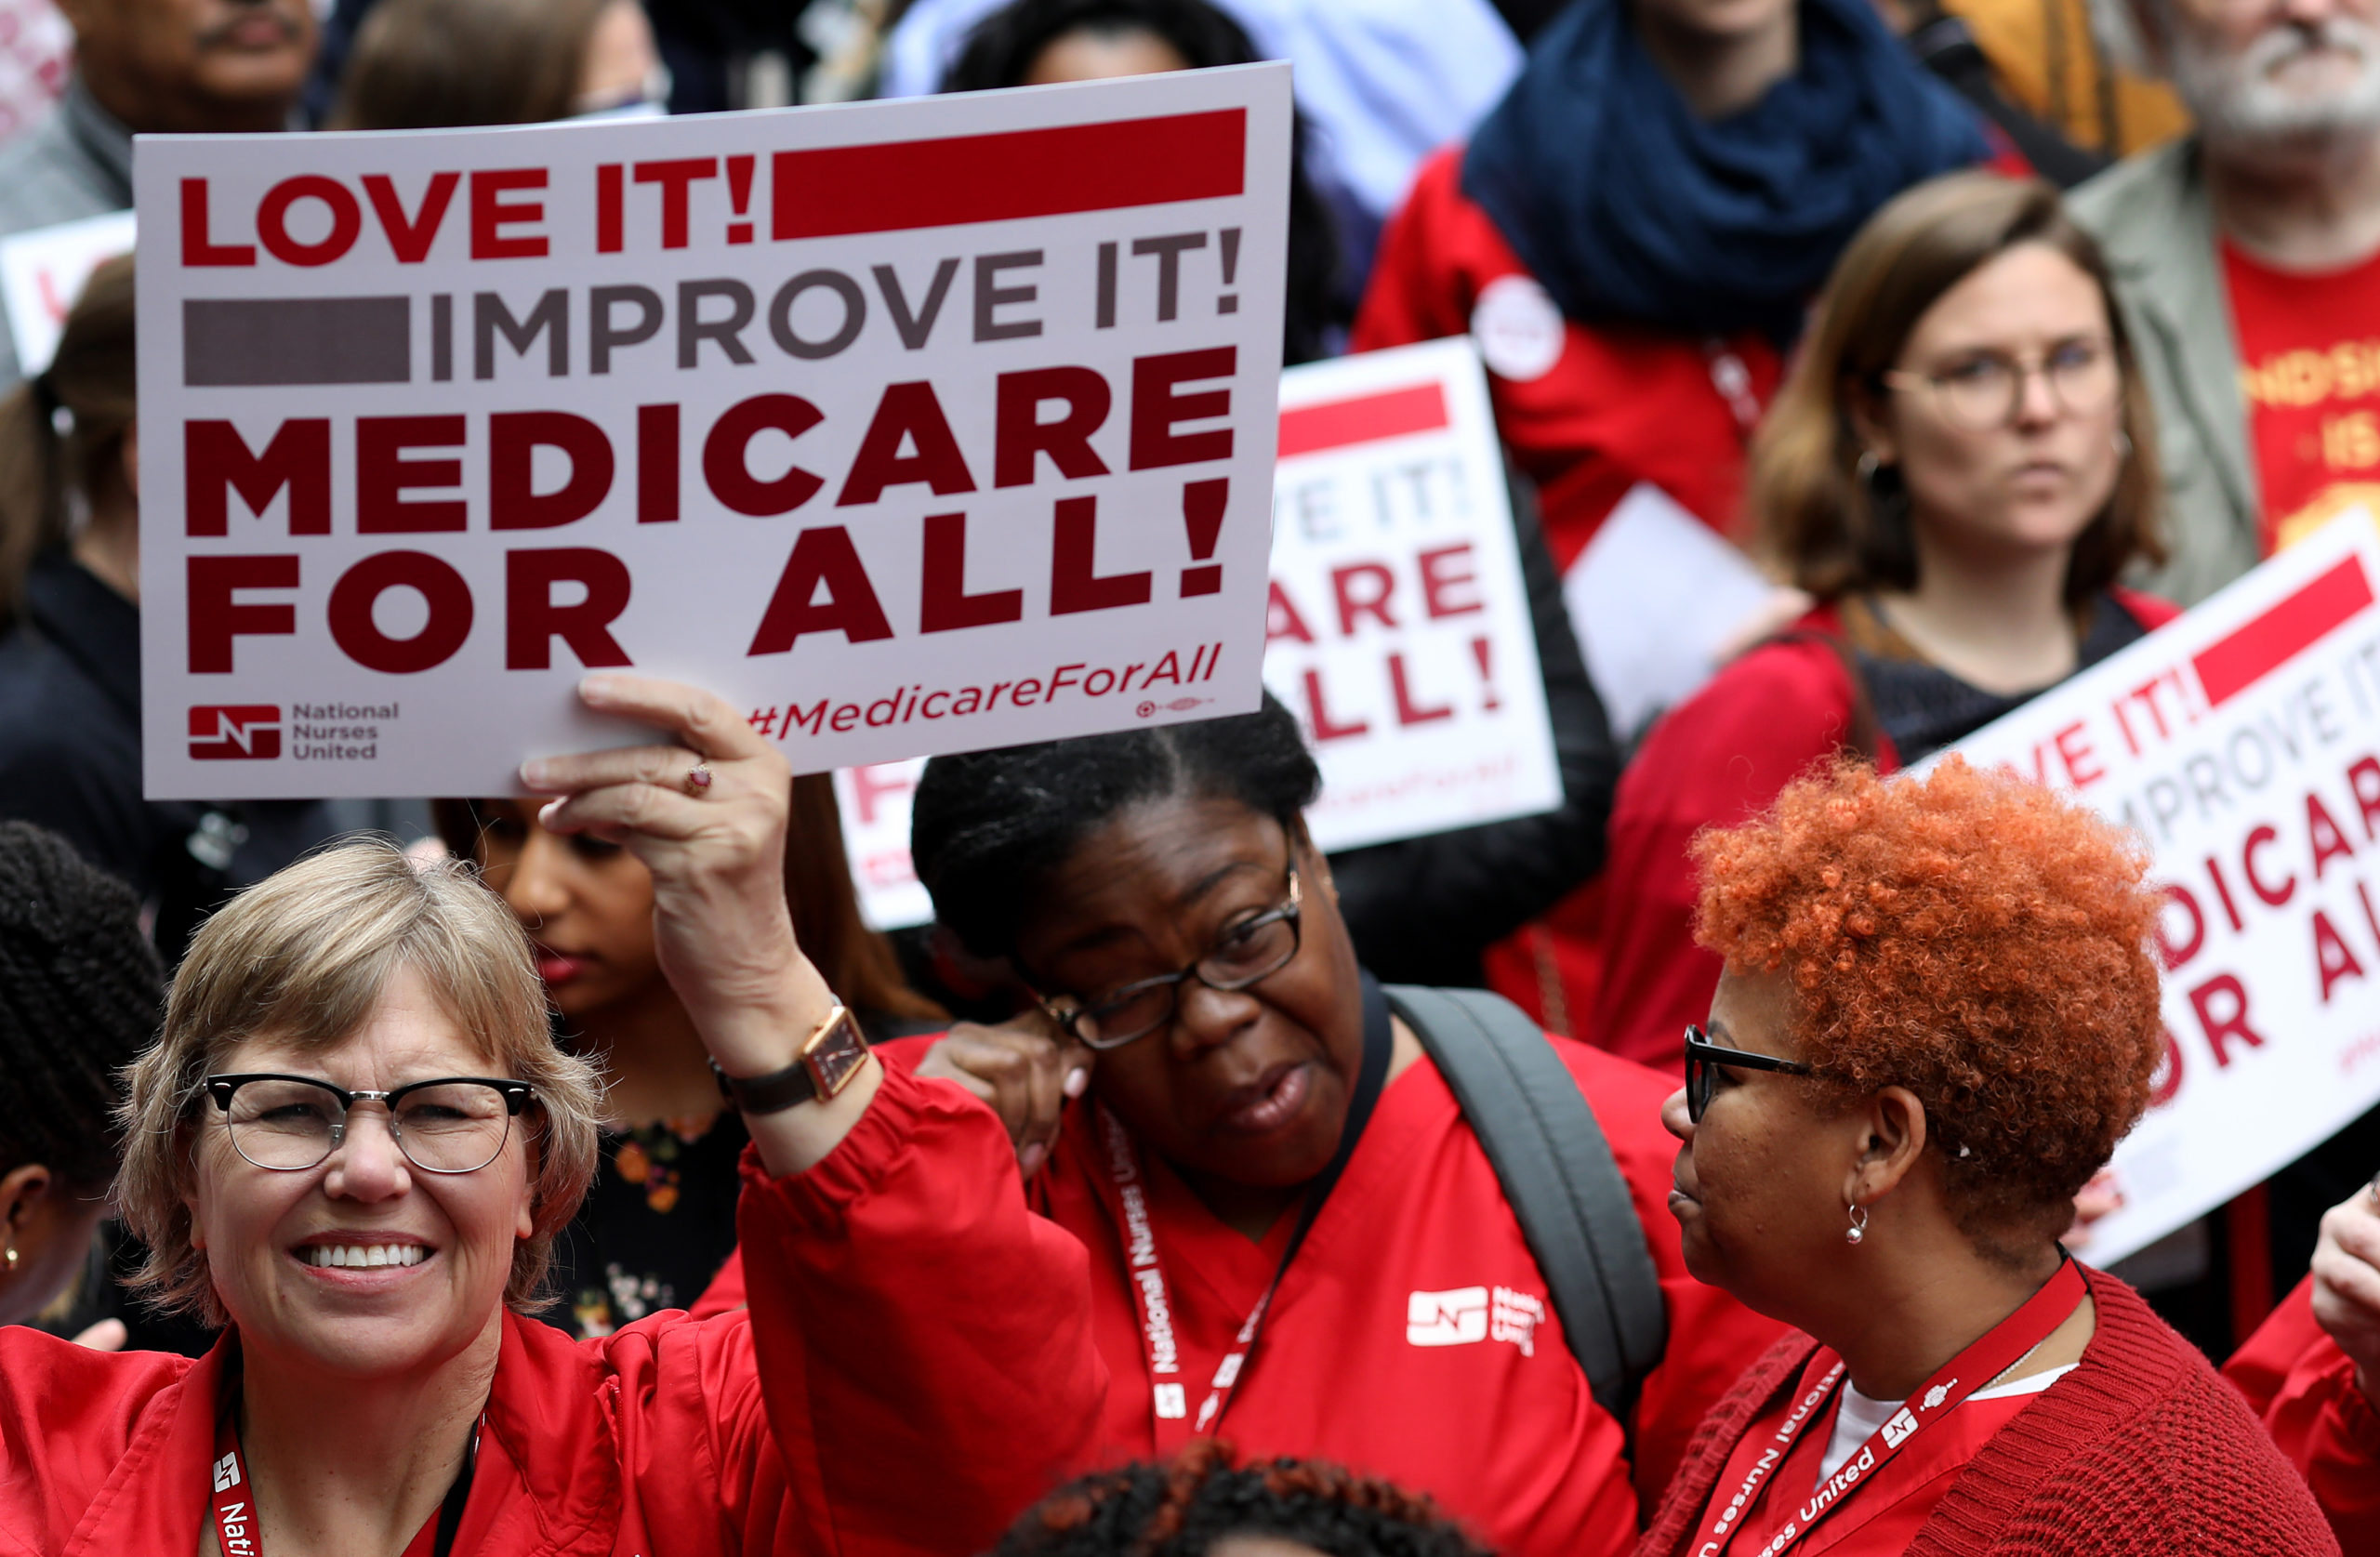 """Protesters supporting """"Medicare for All"""" hold a rally on April 29, 2019 in Washington, D.C. (Win McNamee/Getty Images)"""